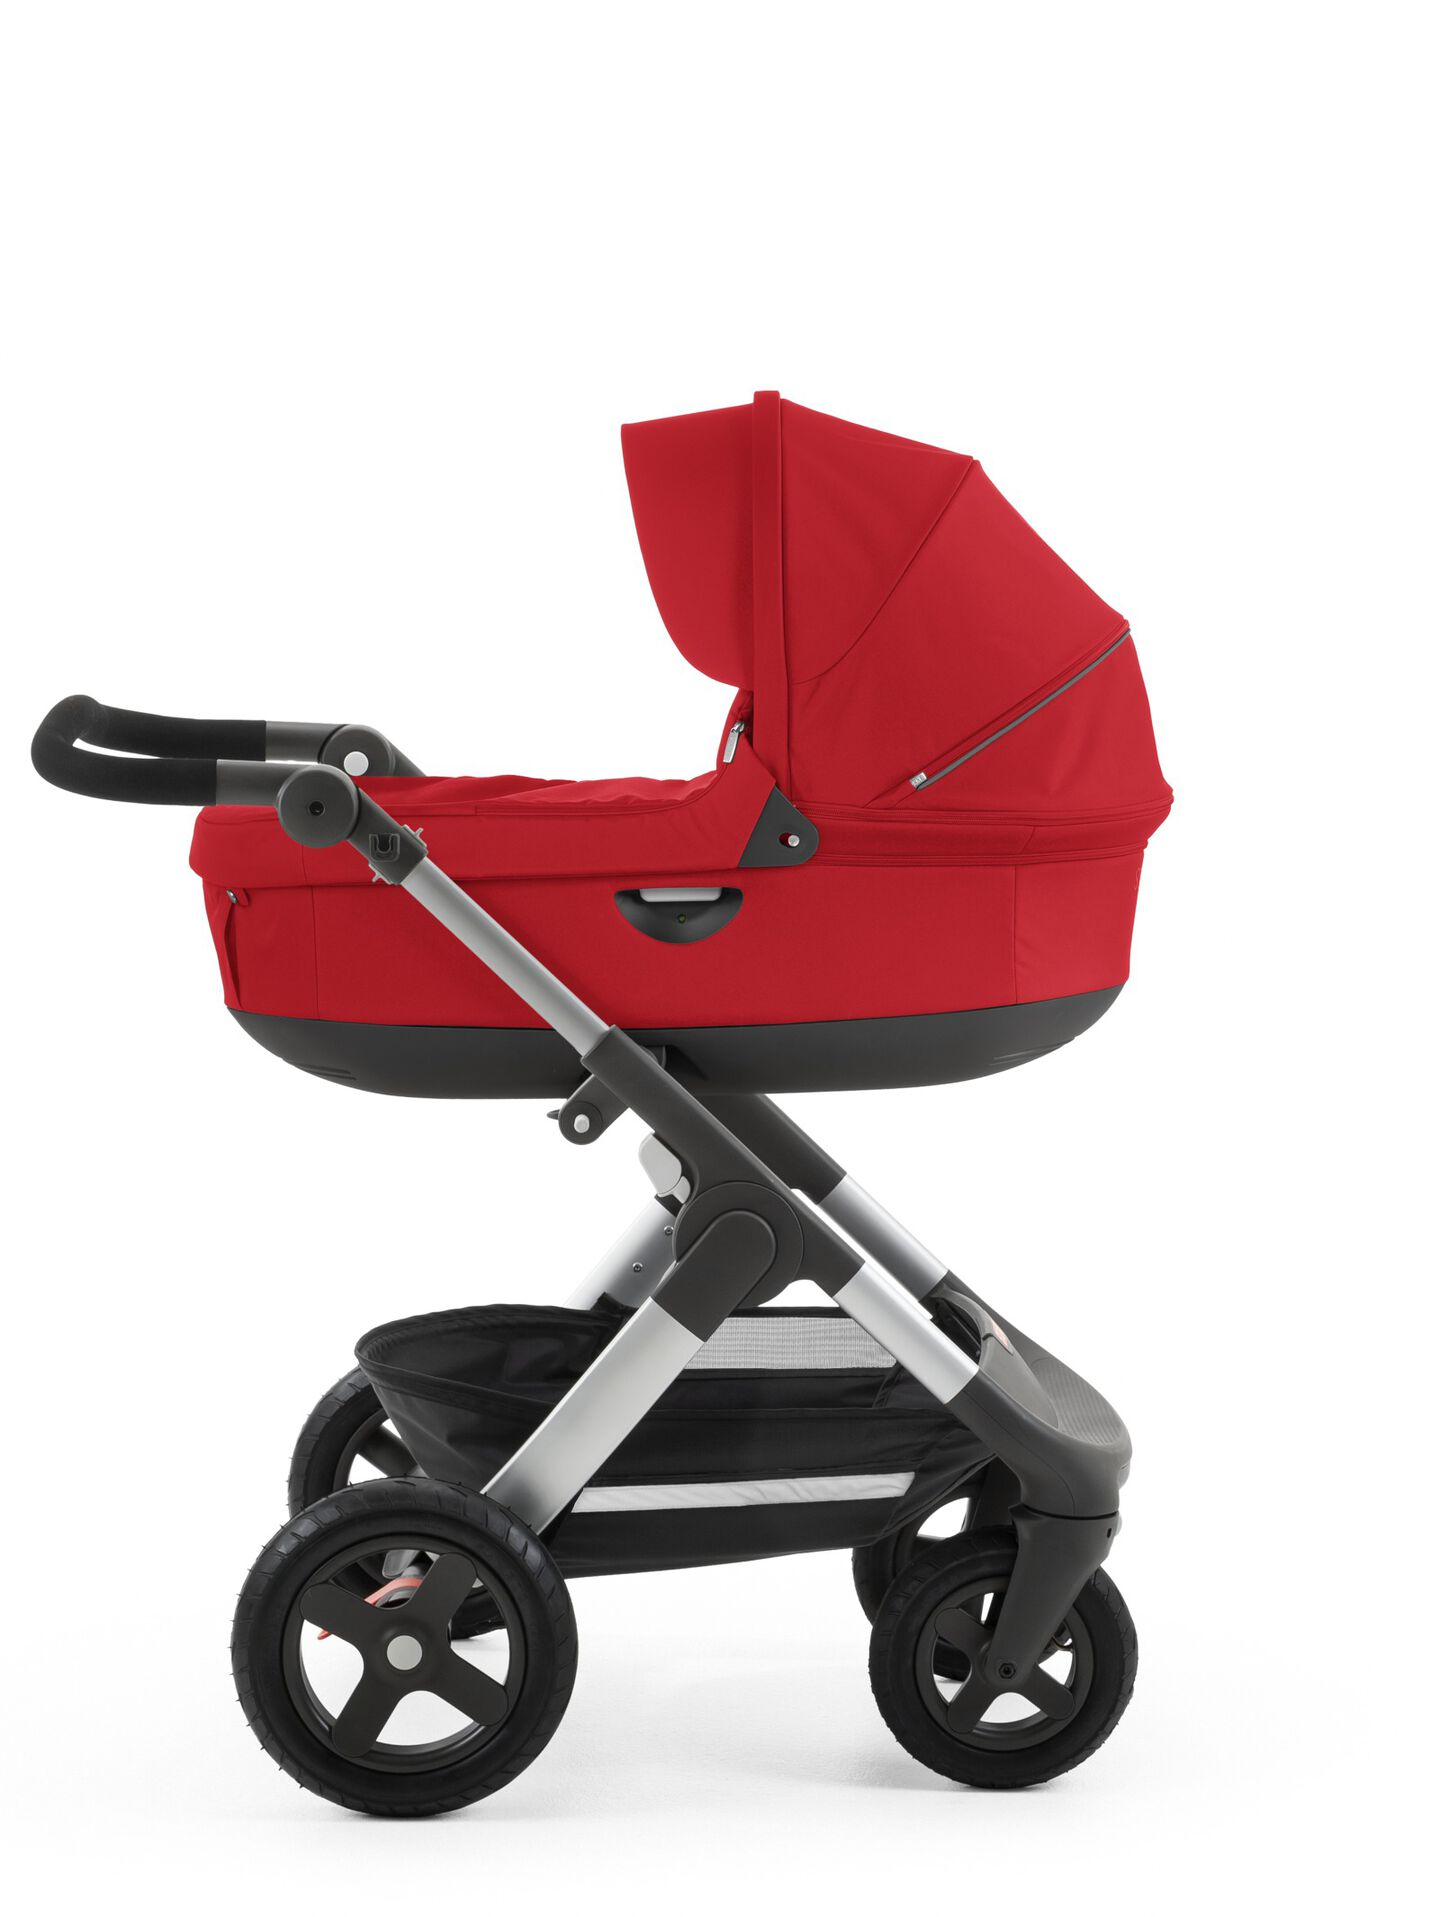 Stokke® Trailz™ with Stokke® Stroller Carry Cot Red.